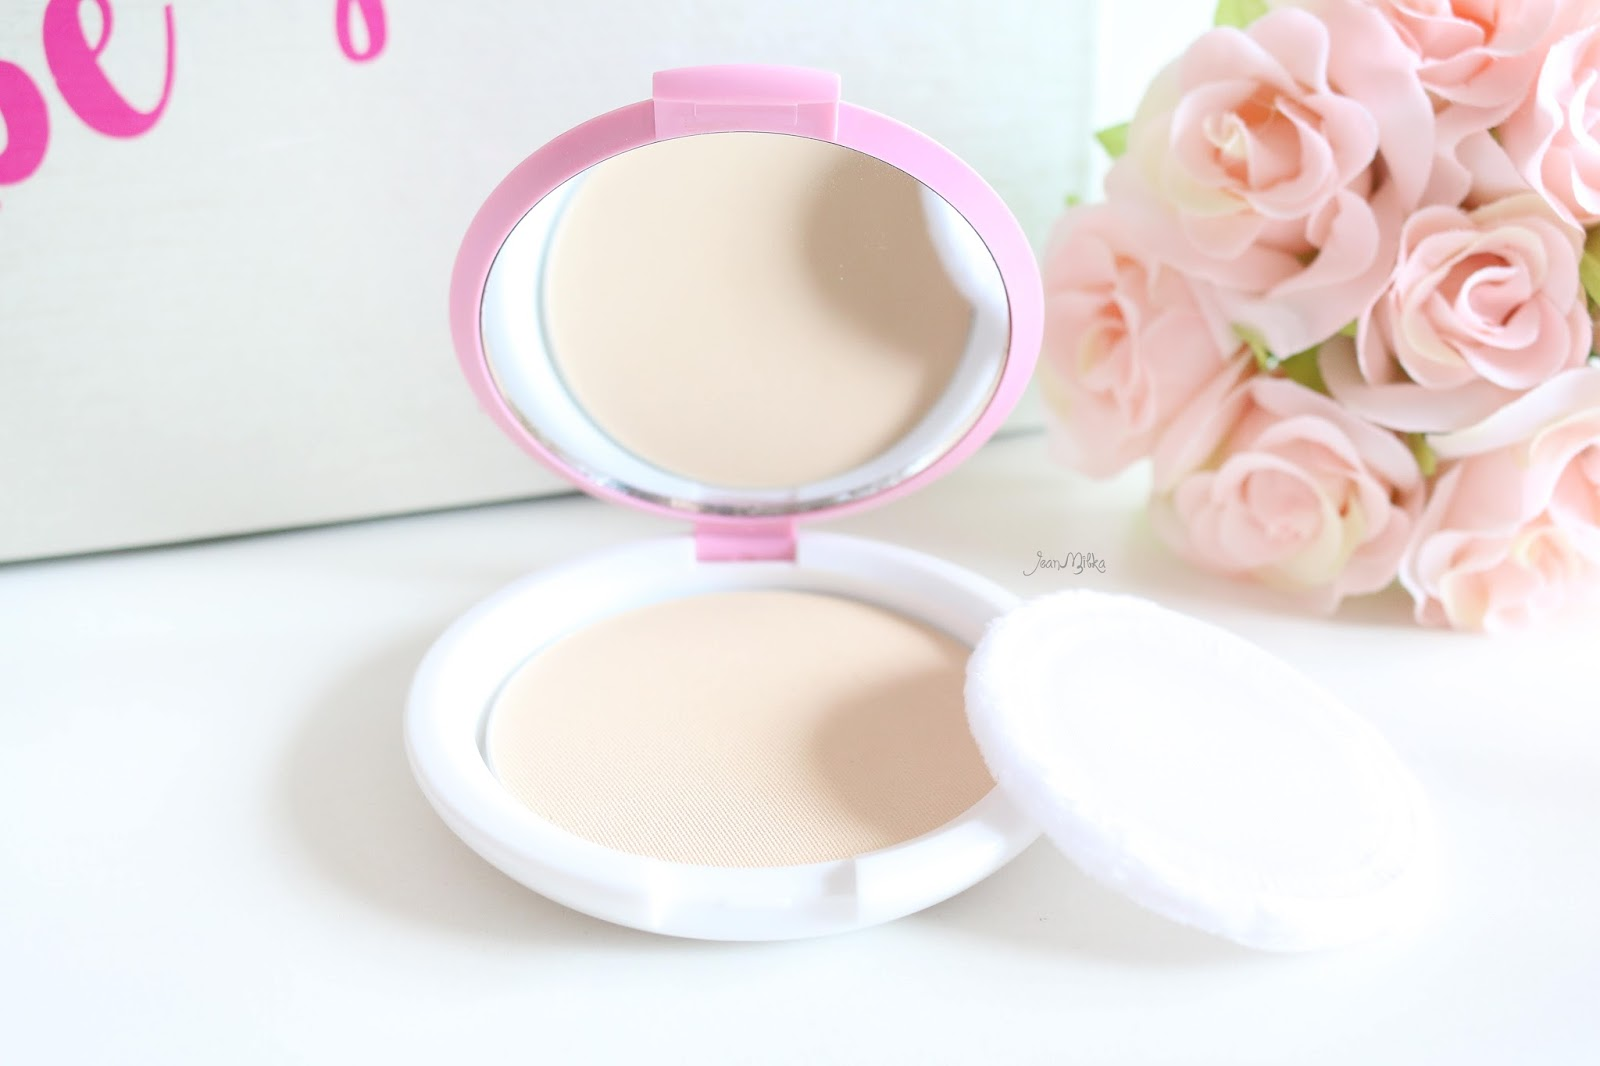 review, marina, marina smooth and glow, bb cream, two way cake, powdery foundation, compact powder, drugstore, makeup, makeup murah, smooth and glow uv, saatnya bersinar, compact powder, marina compact powder